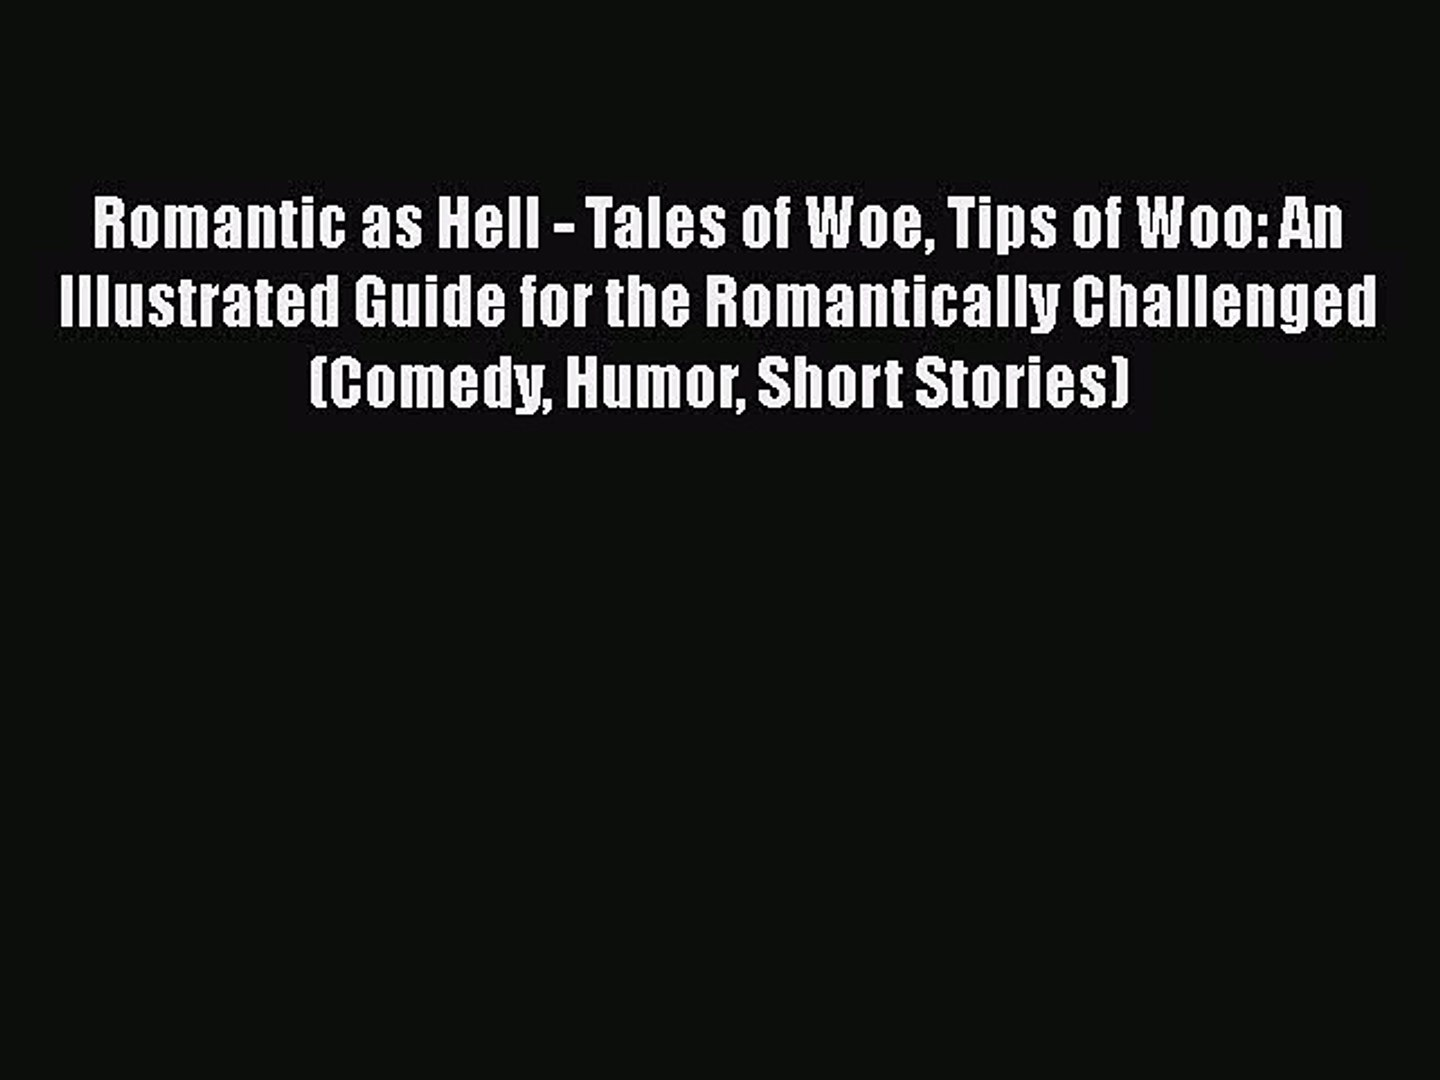 Read Books Romantic as Hell - Tales of Woe Tips of Woo: An Illustrated Guide for the Romantically